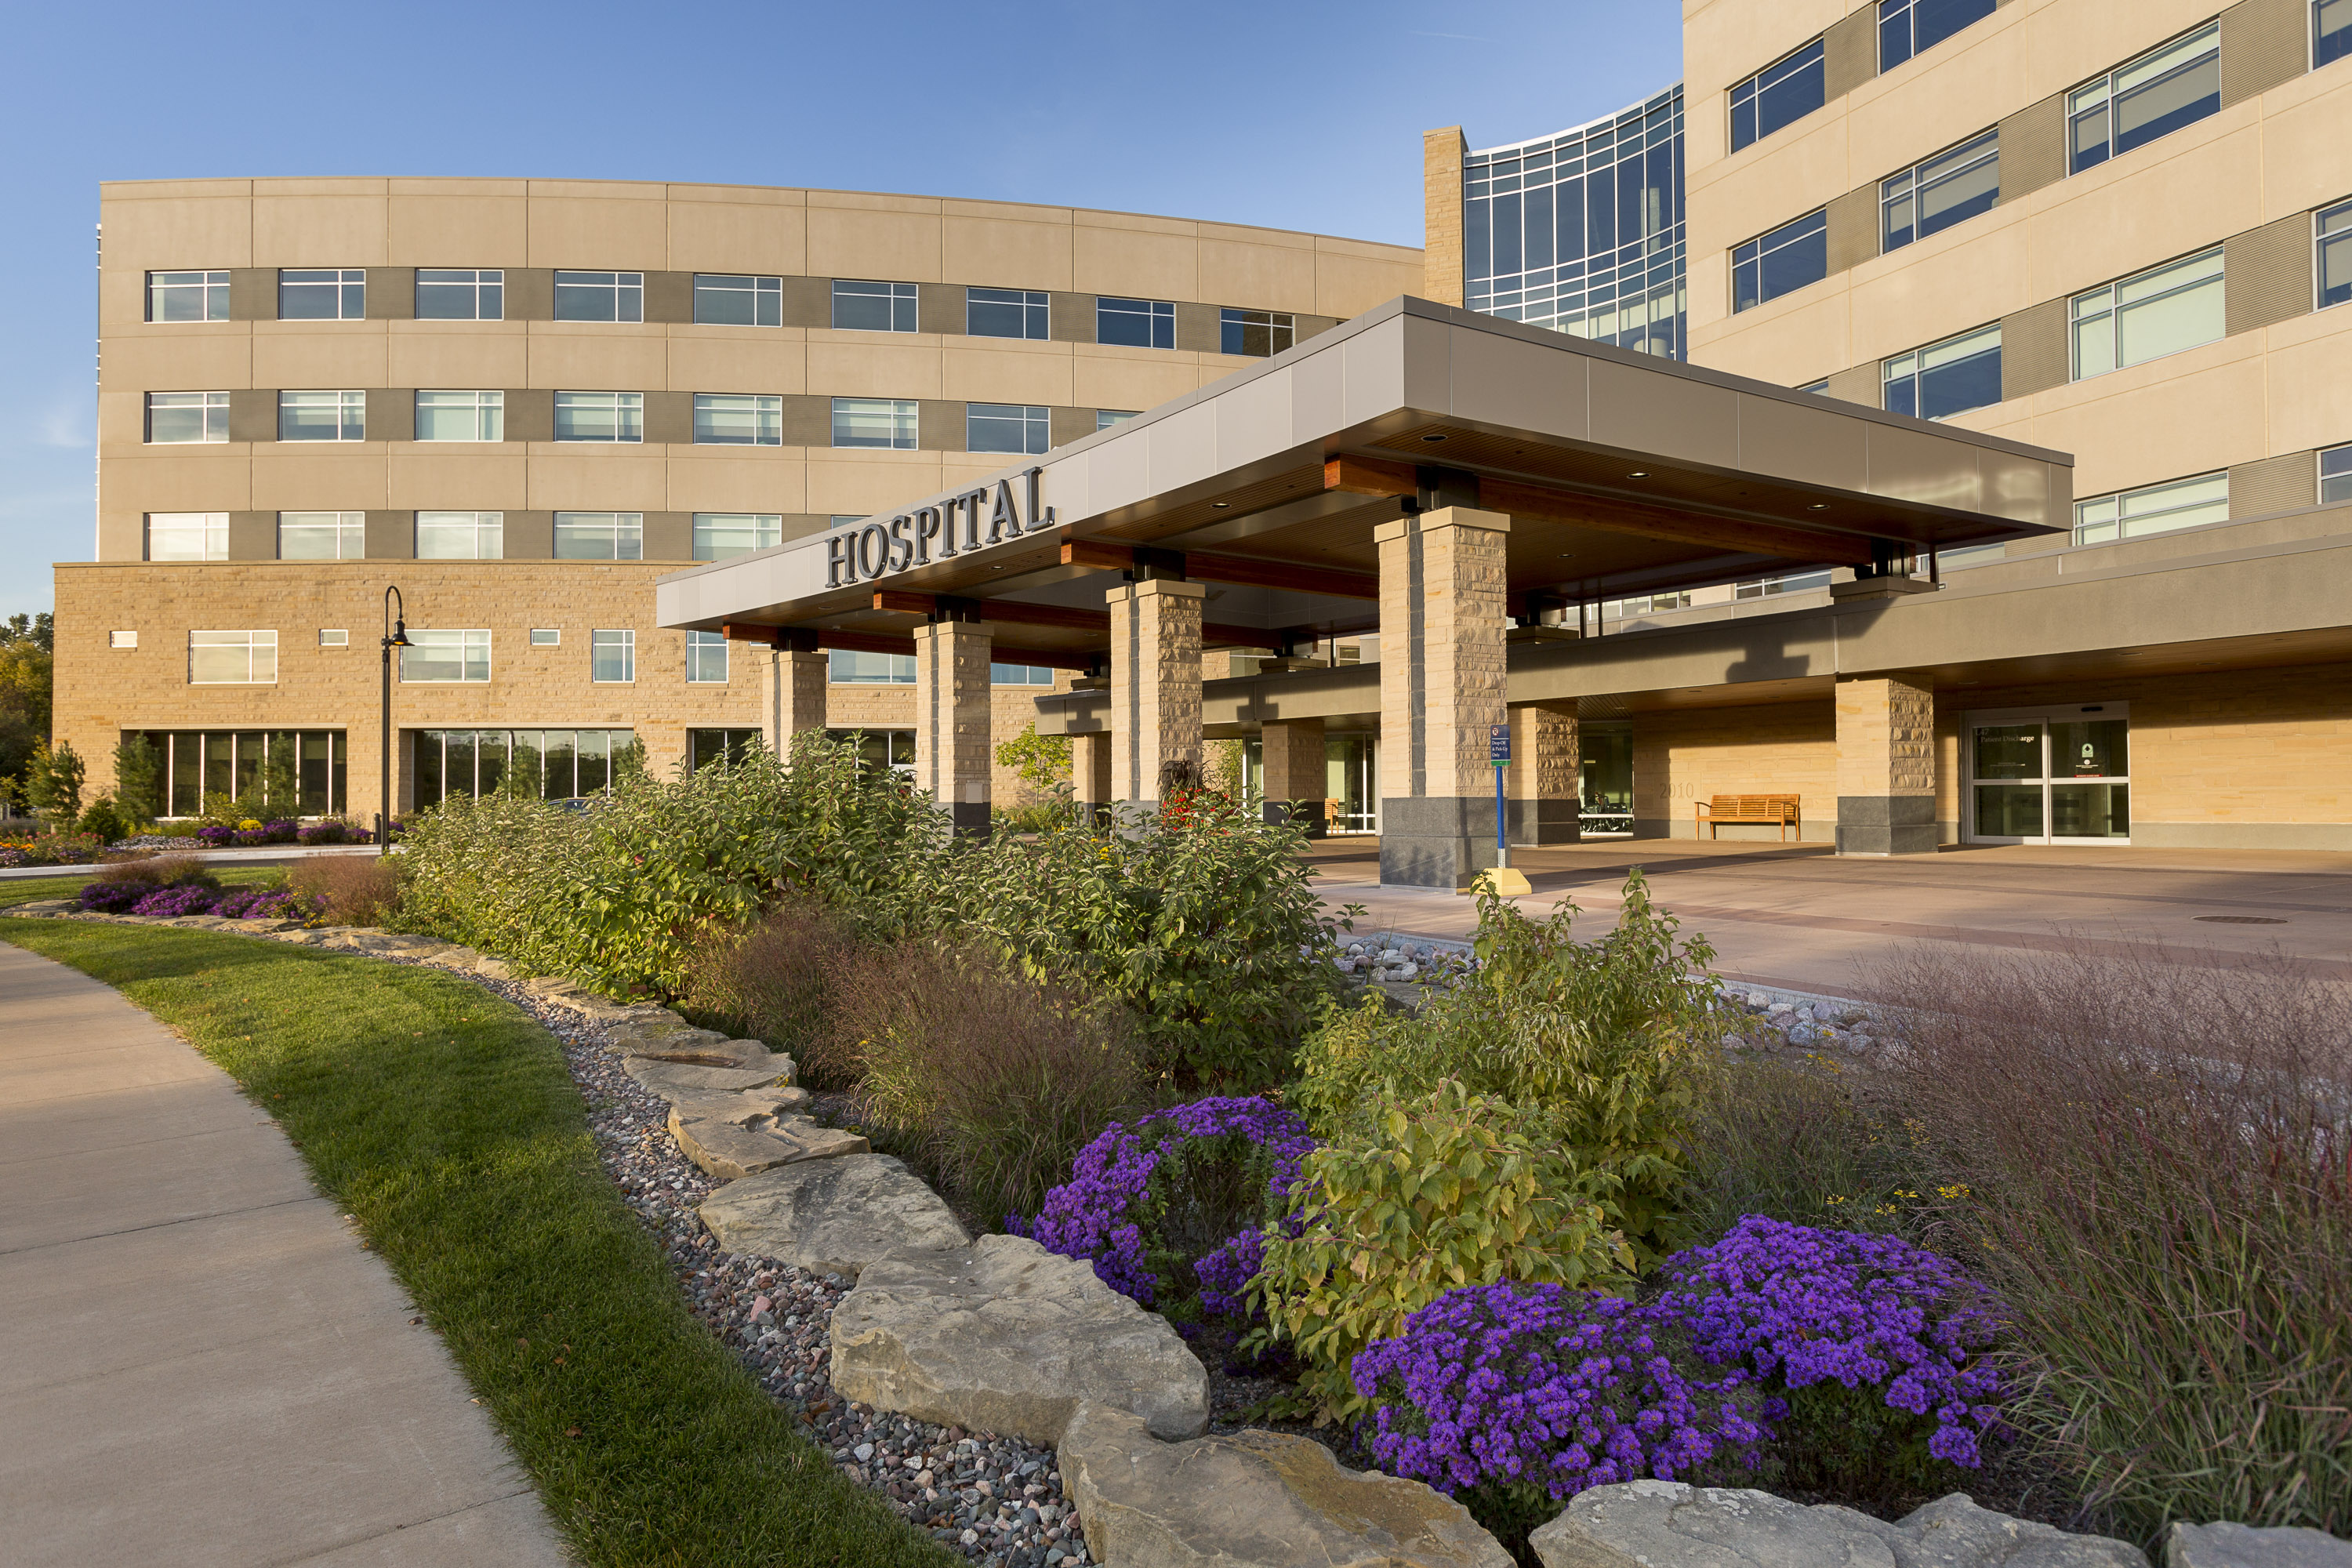 Mayo Health System In Eau Claire Wis 100 Great Community Hospitals 2015